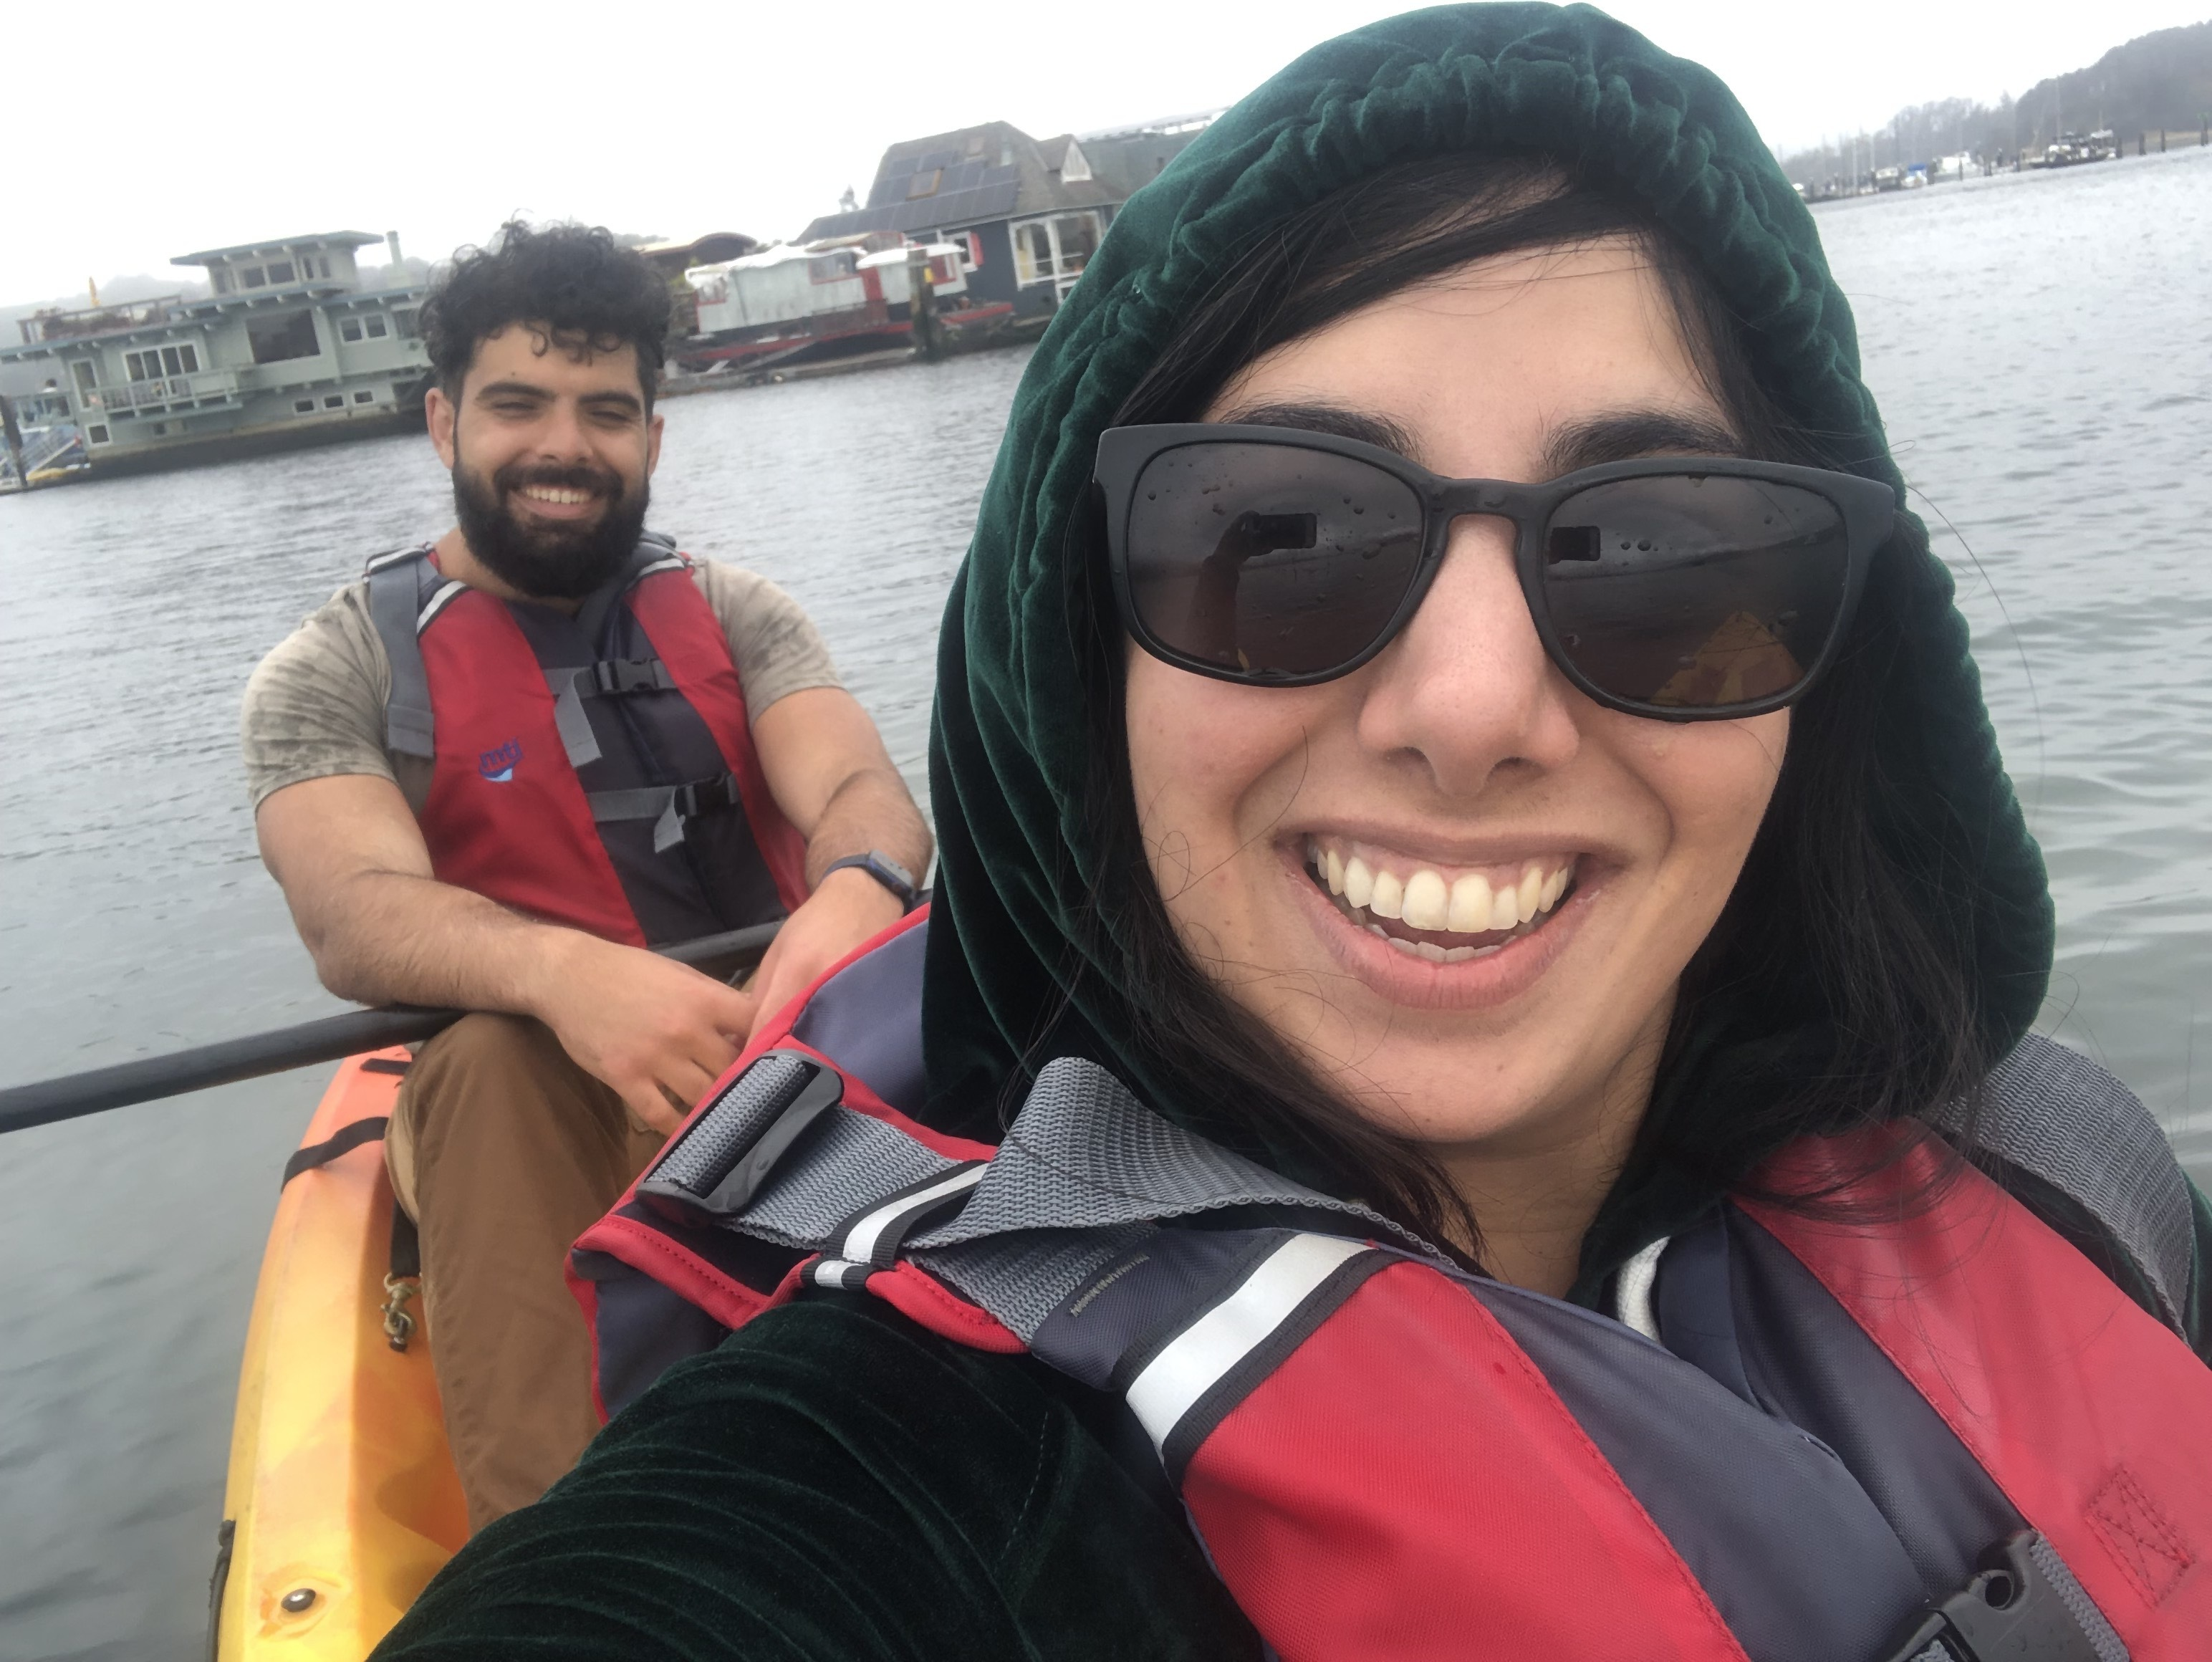 Kayaking in Sausalito with Shab, Featureform's Head of Operations